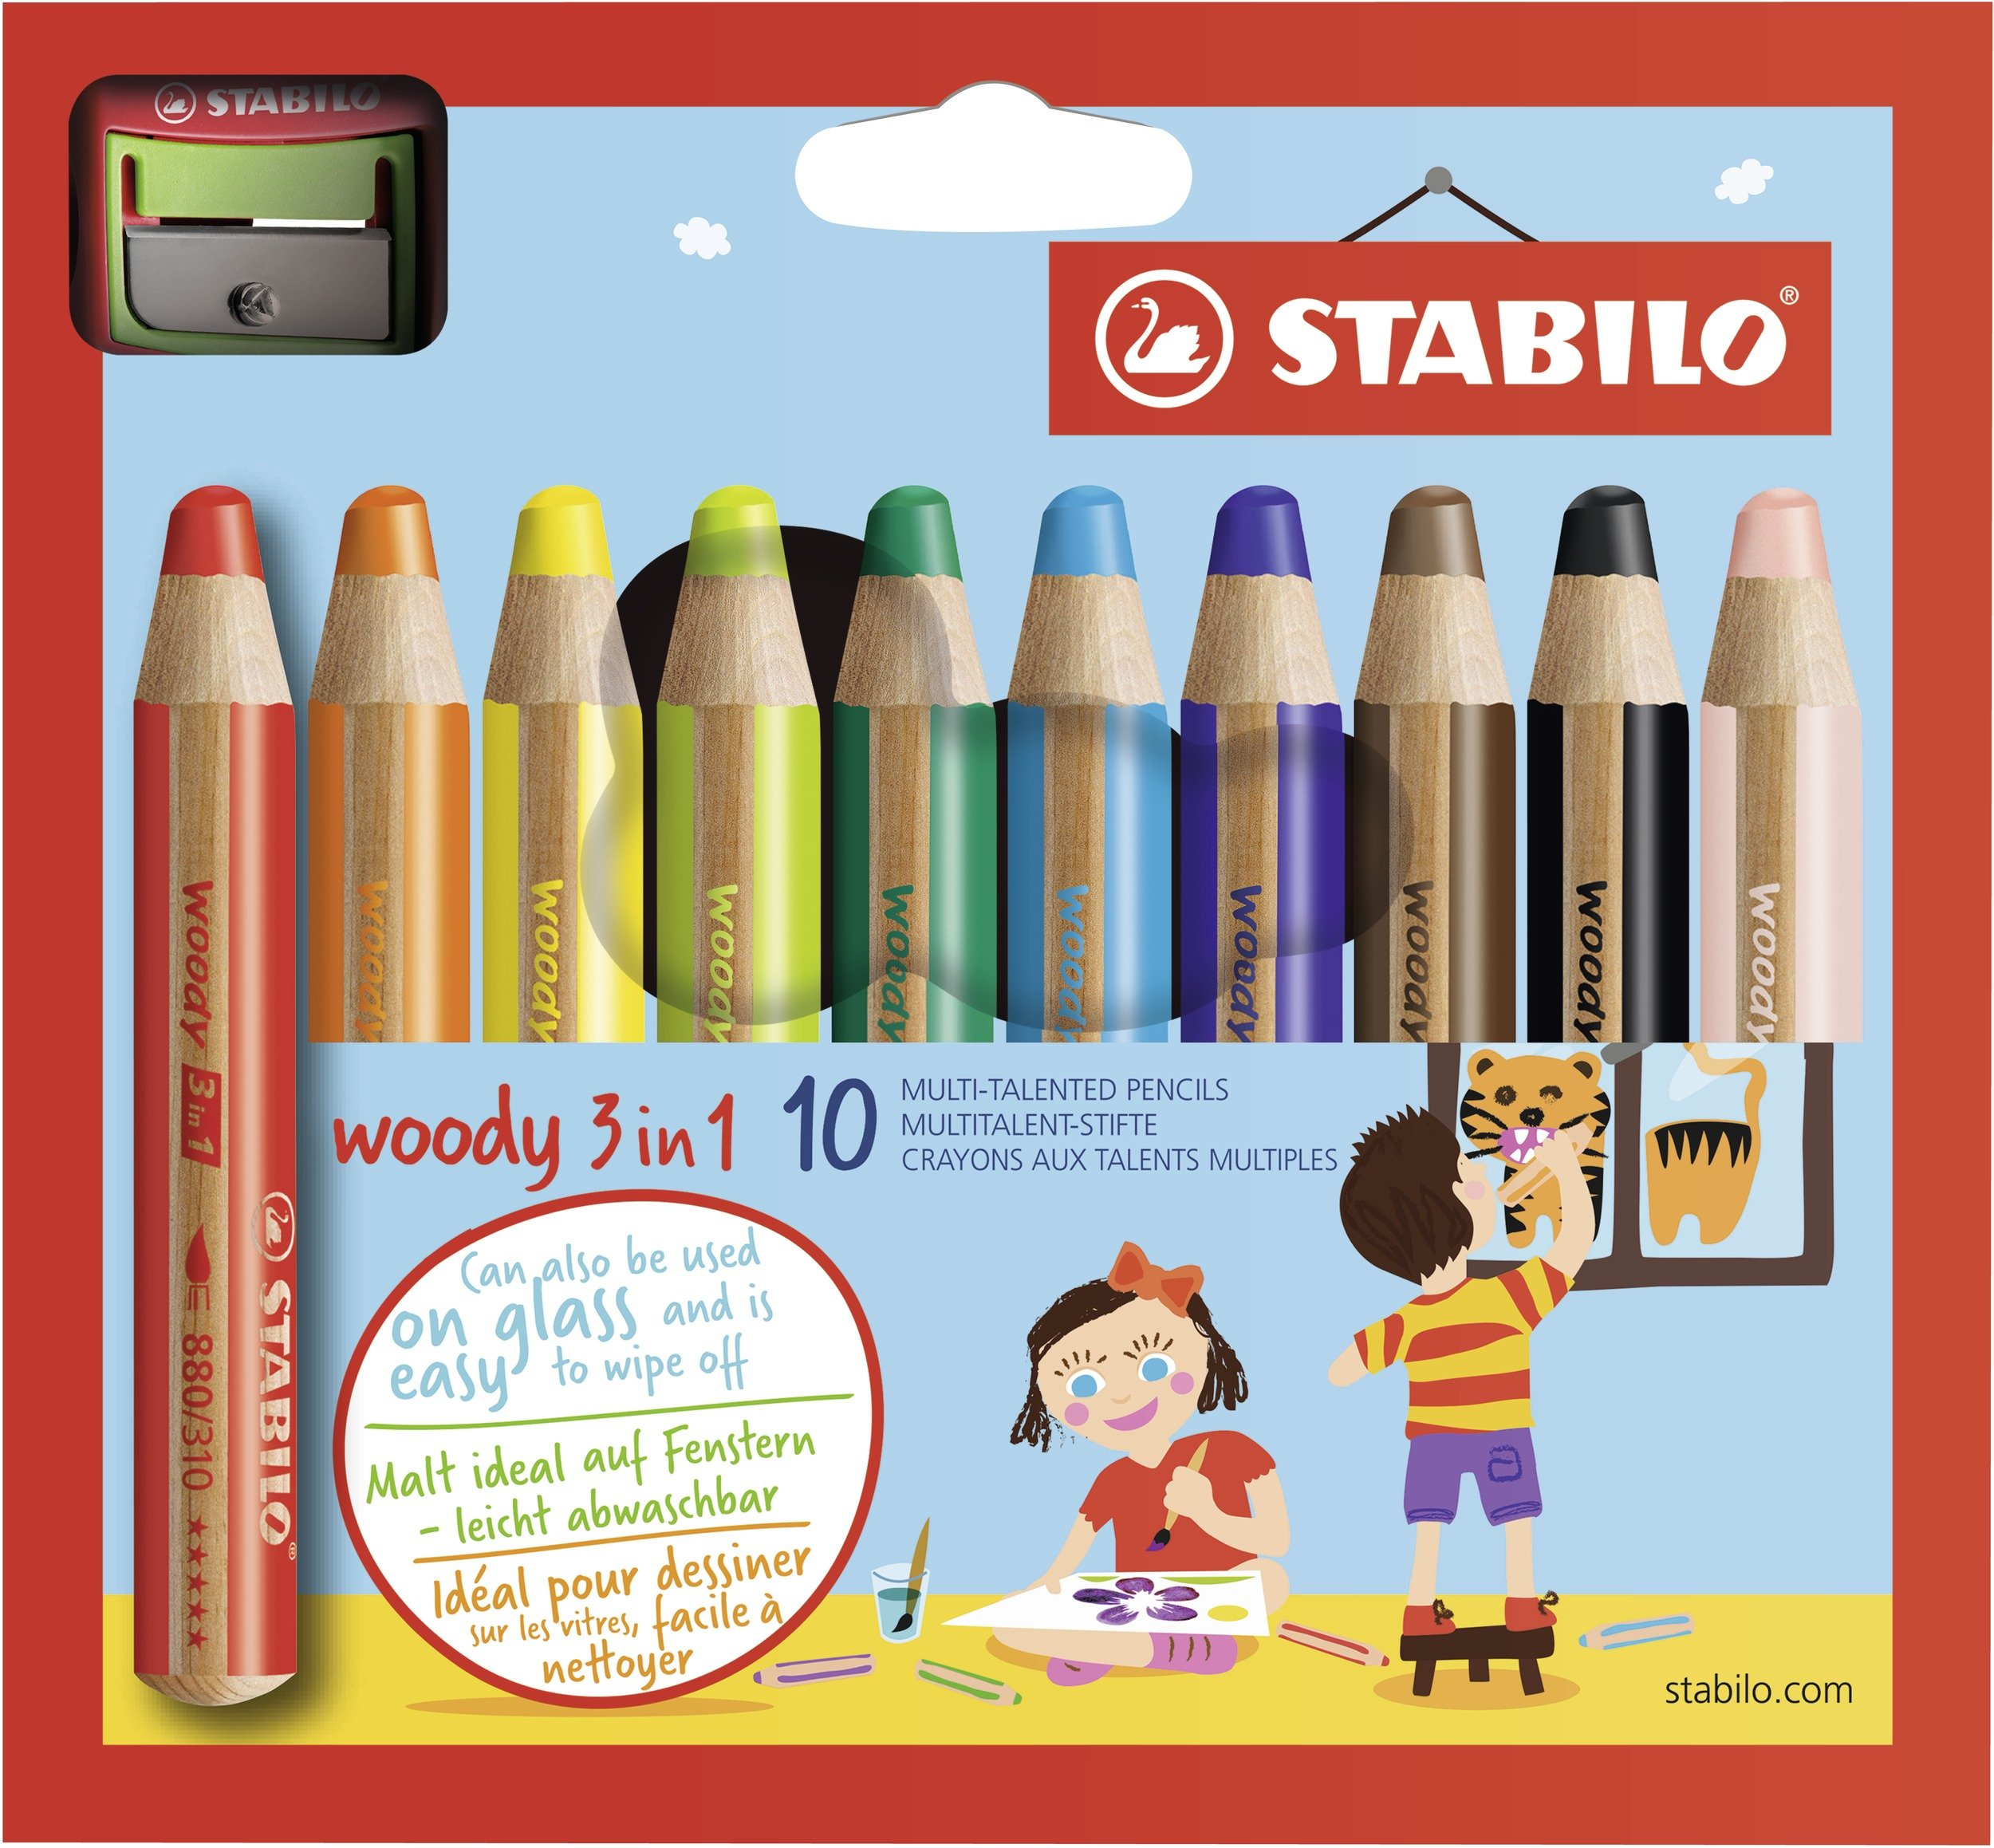 STABILO Woody 3-in-1 Colored Pencils, 10 mm Lead - 10-Color Set by STABILO